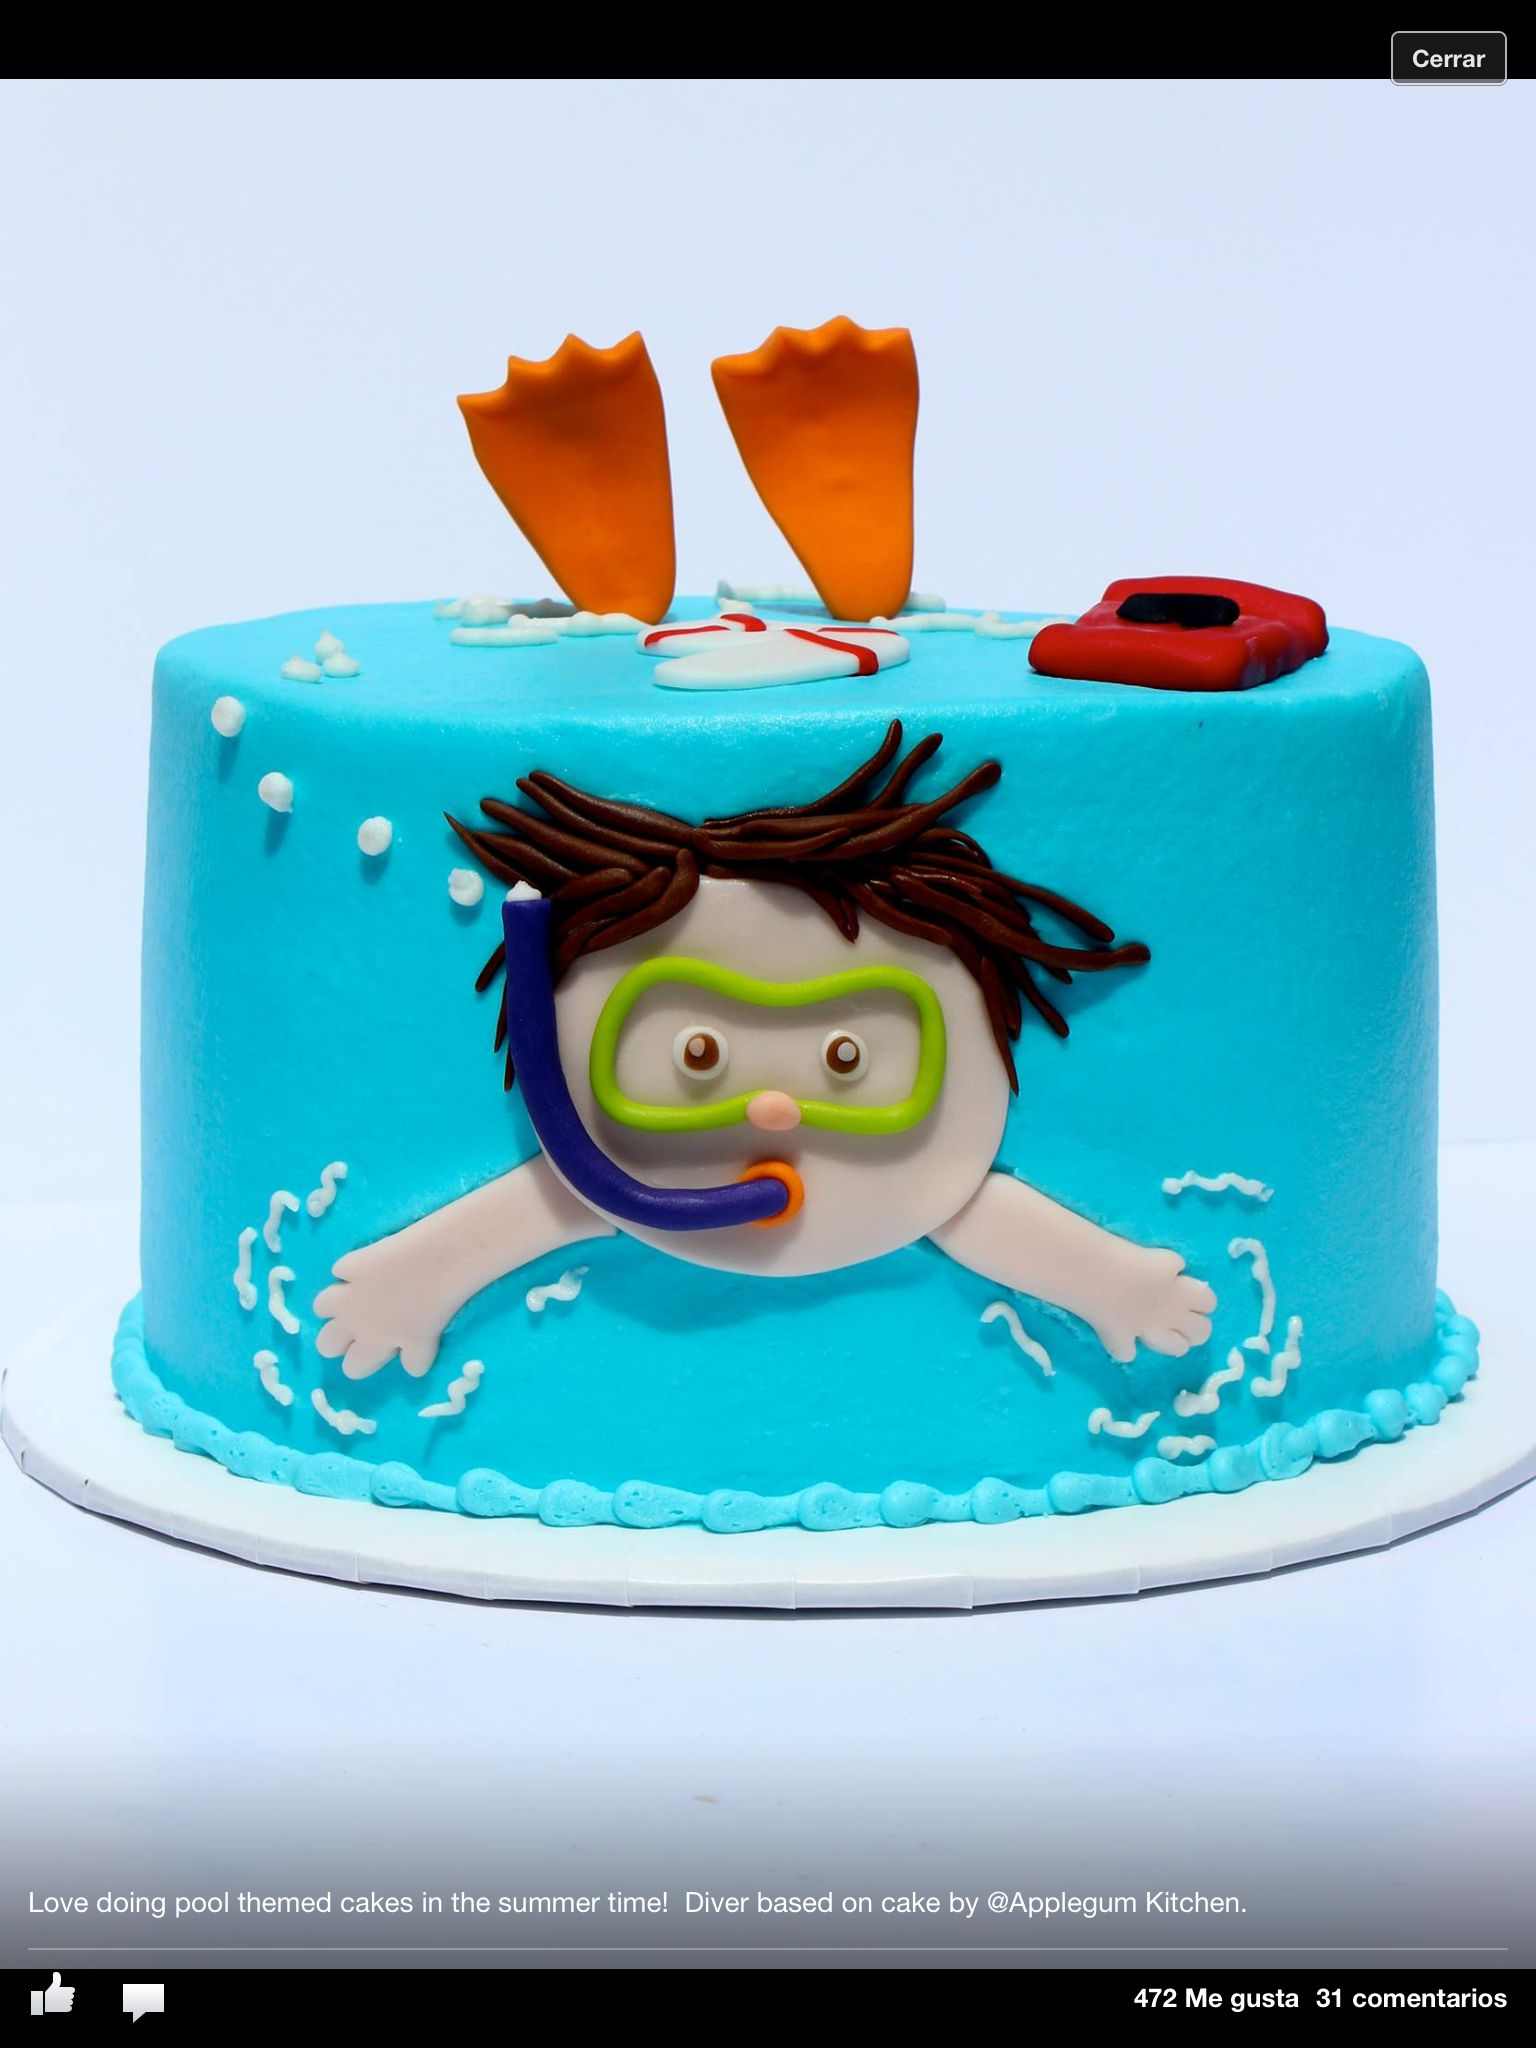 25 Pool Party Cakes That Make a Splash! | Cute Cakes | Pinterest ...